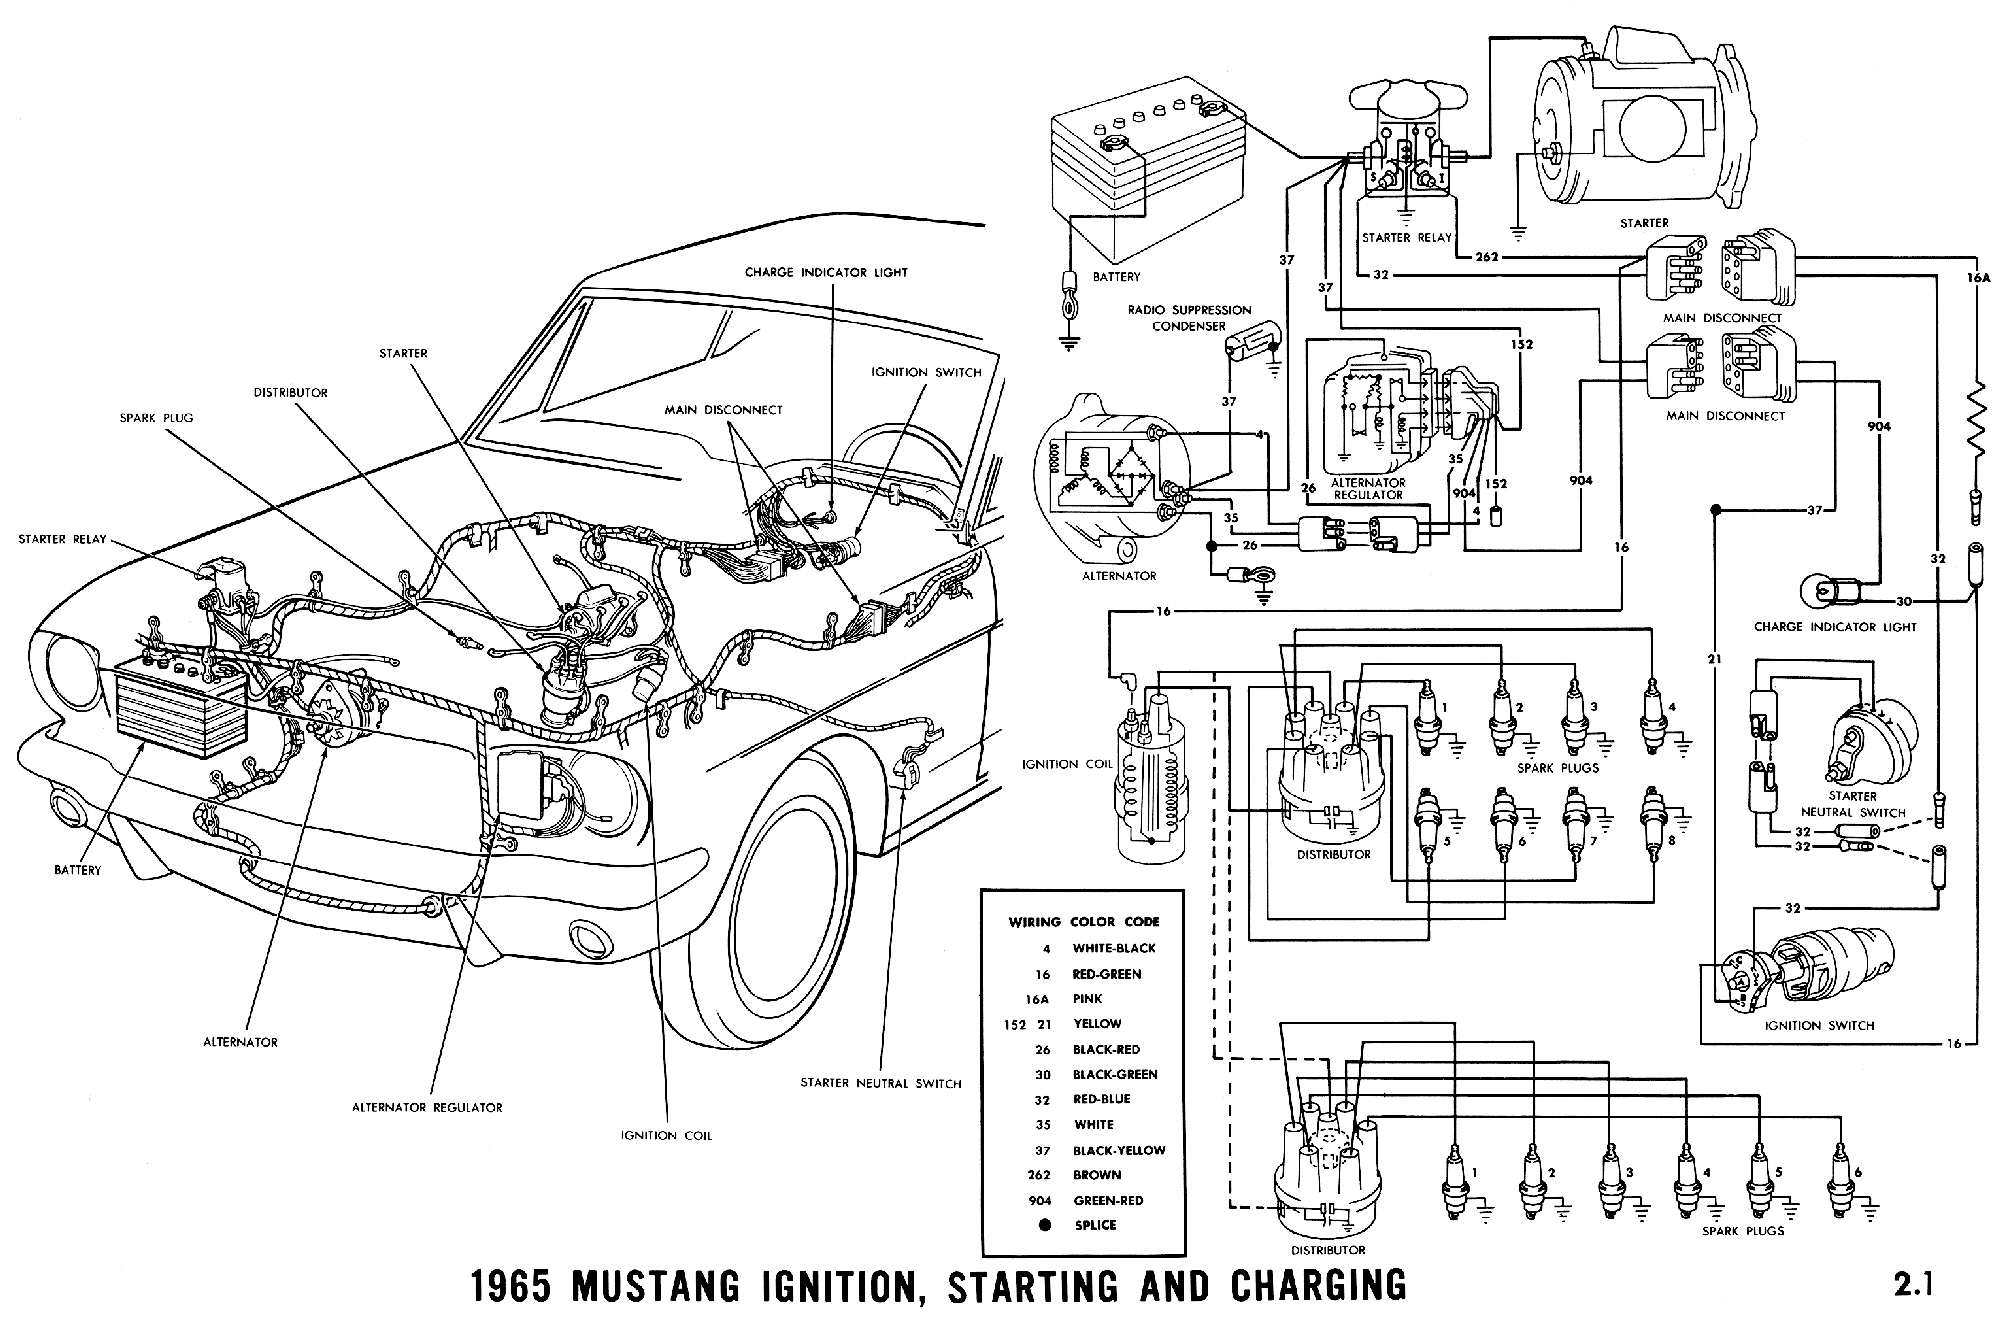 hight resolution of 66 mustang fuse diagram wiring diagram article review 1966 mustang fuse box location